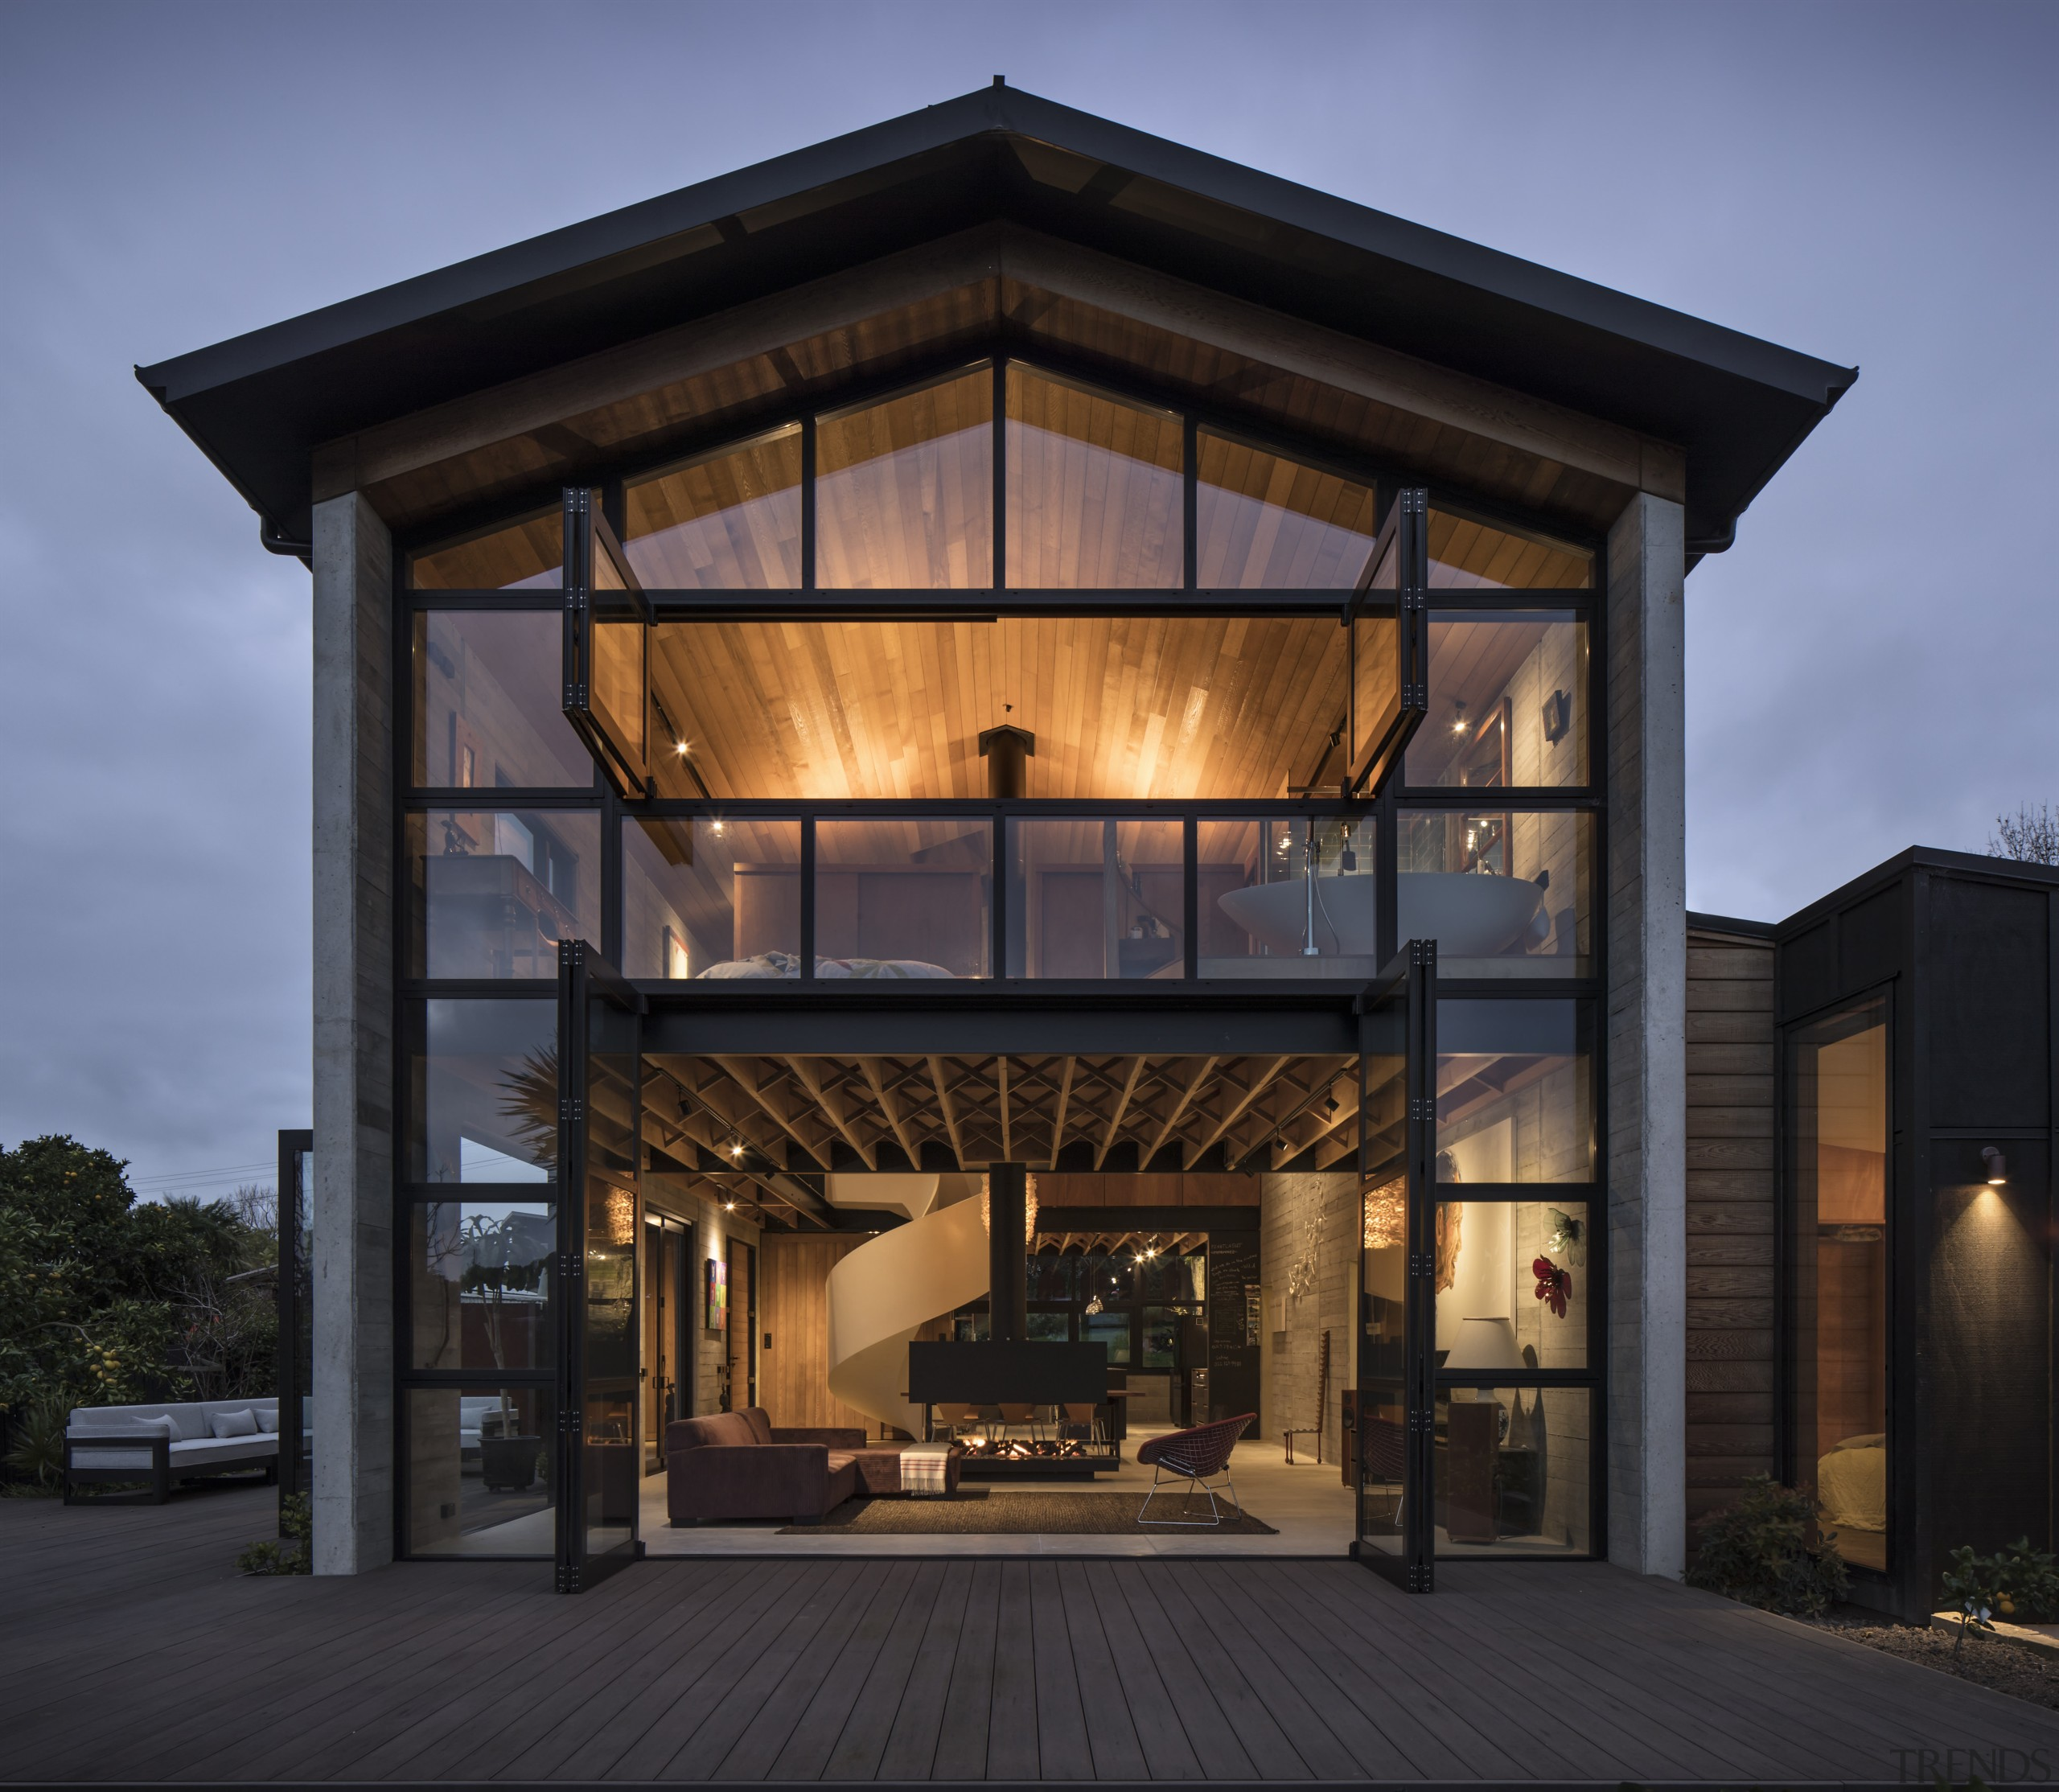 The primary structure of this new home by architecture, building, facade, home, house, black, Vaughn McQuarrie Architect